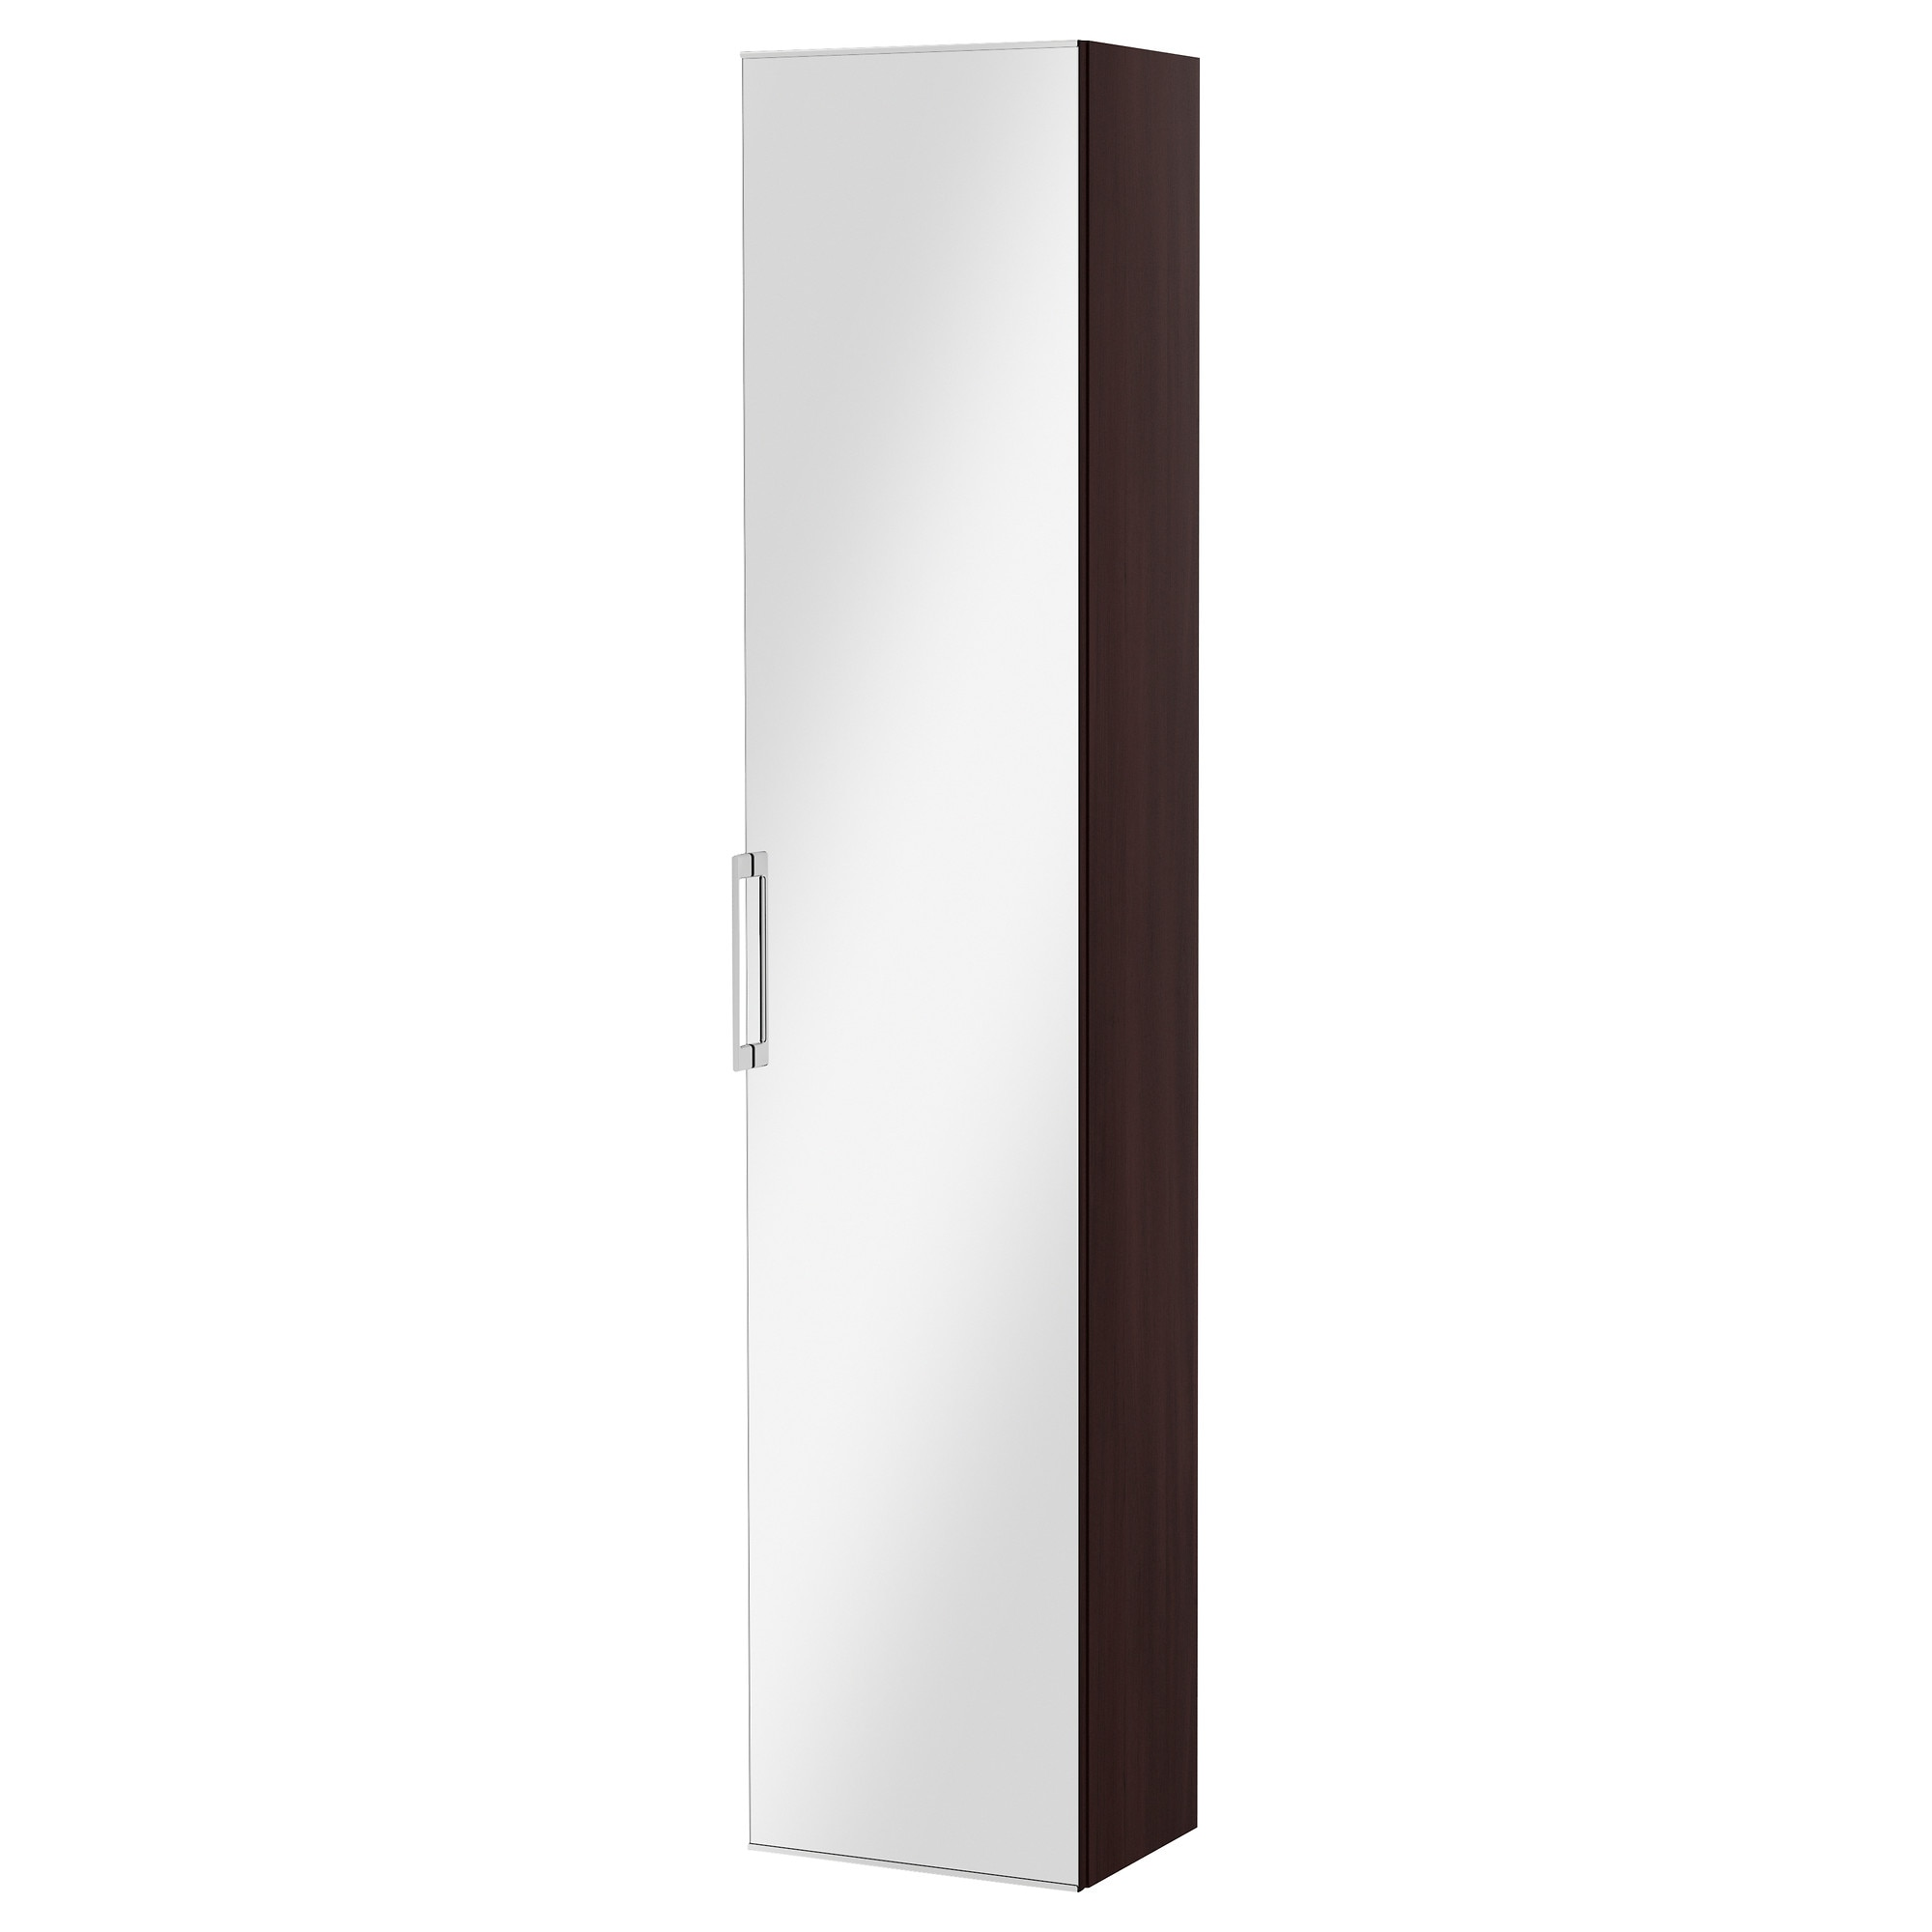 GODMORGON high cabinet with mirror door  black brown Width  15 3 4. Bathroom Cabinets   High   Tall   IKEA